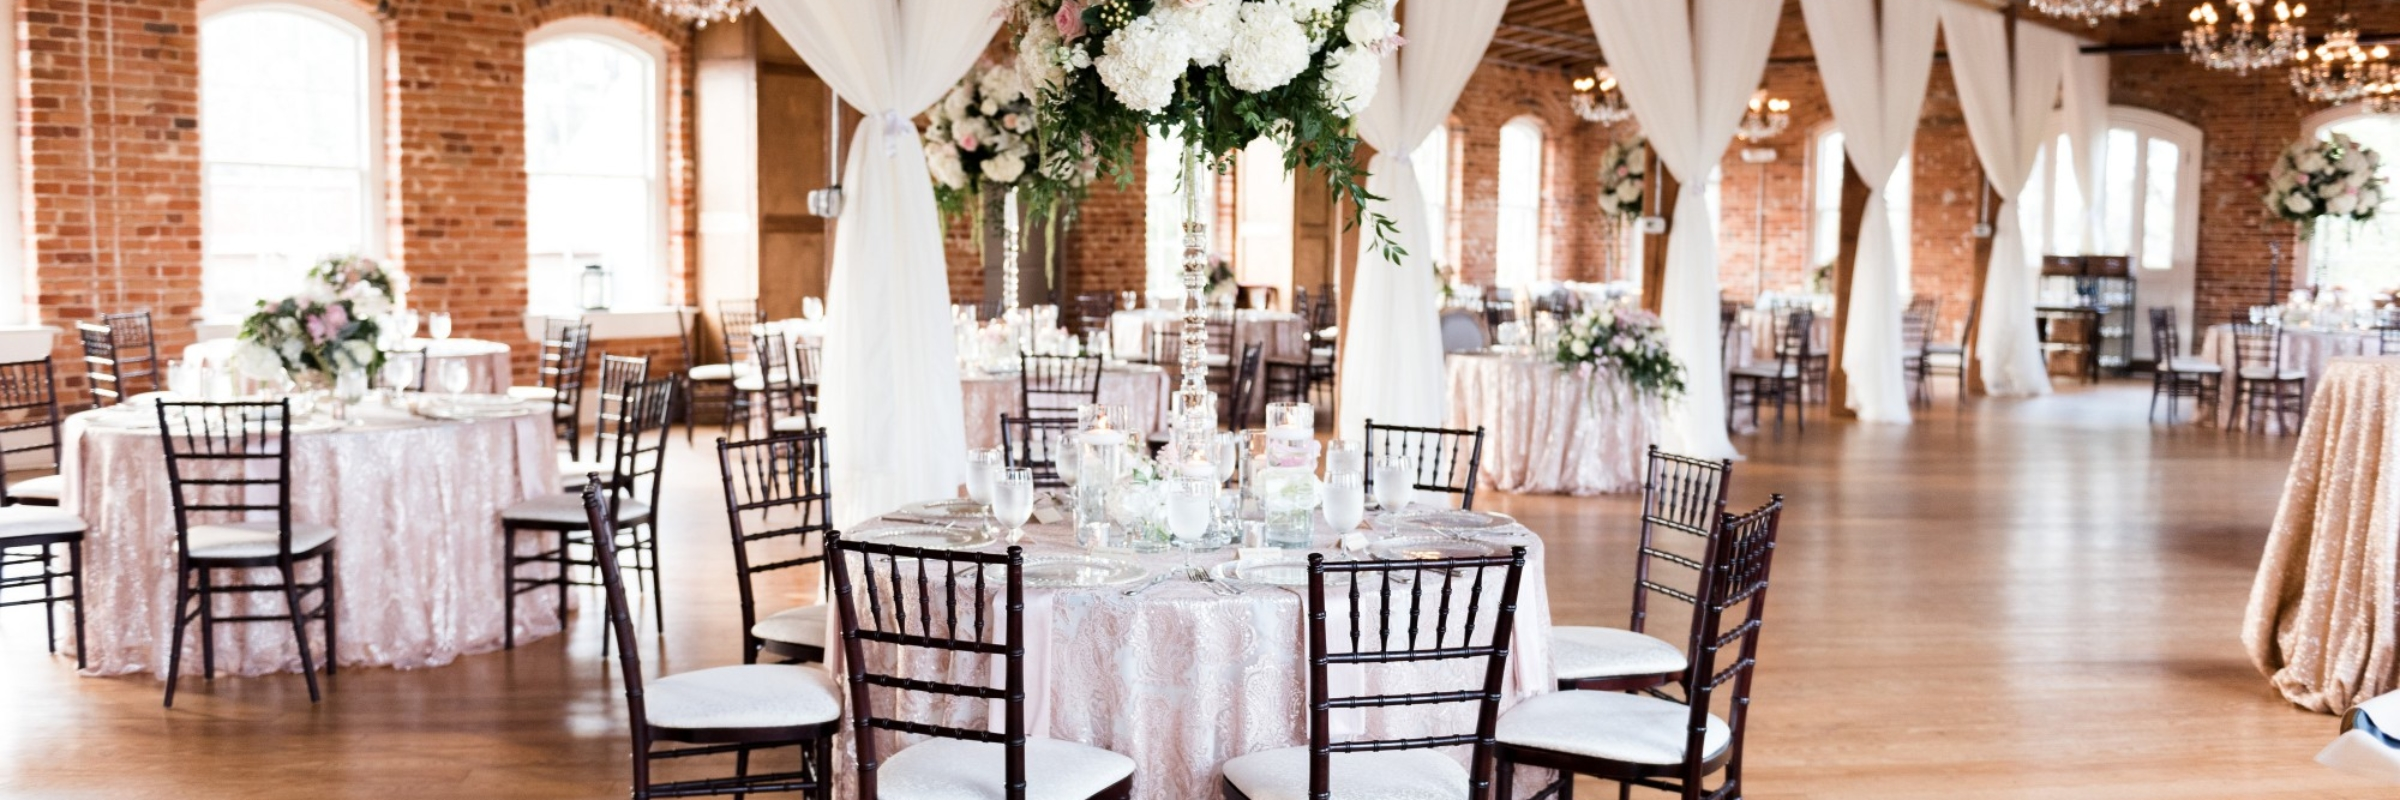 Historic Melrose Knitting Mill - Wedding and Special Events Venue in Downtown Raleigh